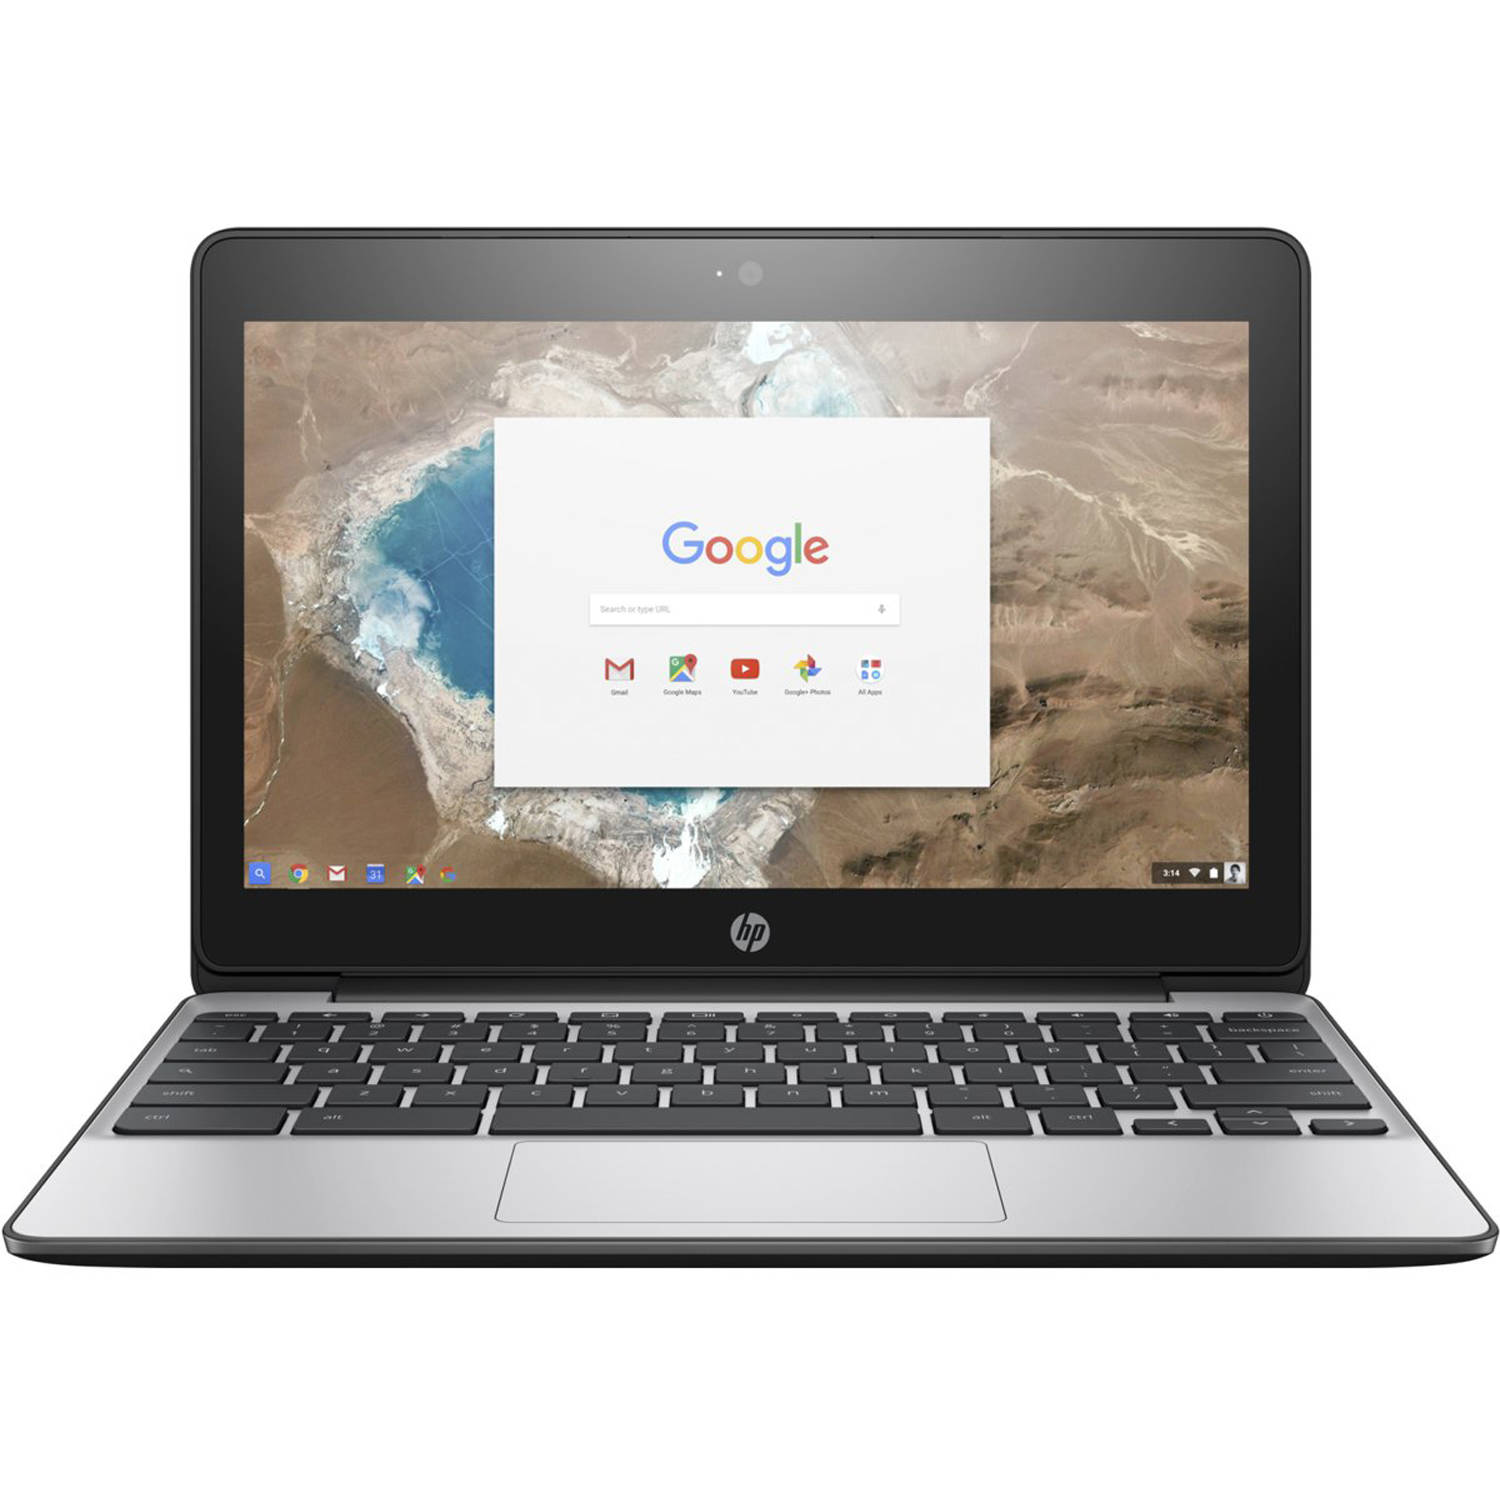 "Refurbished HP 11-v010wm 11.6"" Chromebook, Chrome, Intel Celeron N3060 Processor, 4GB RAM, 16GB eMMC Drive"